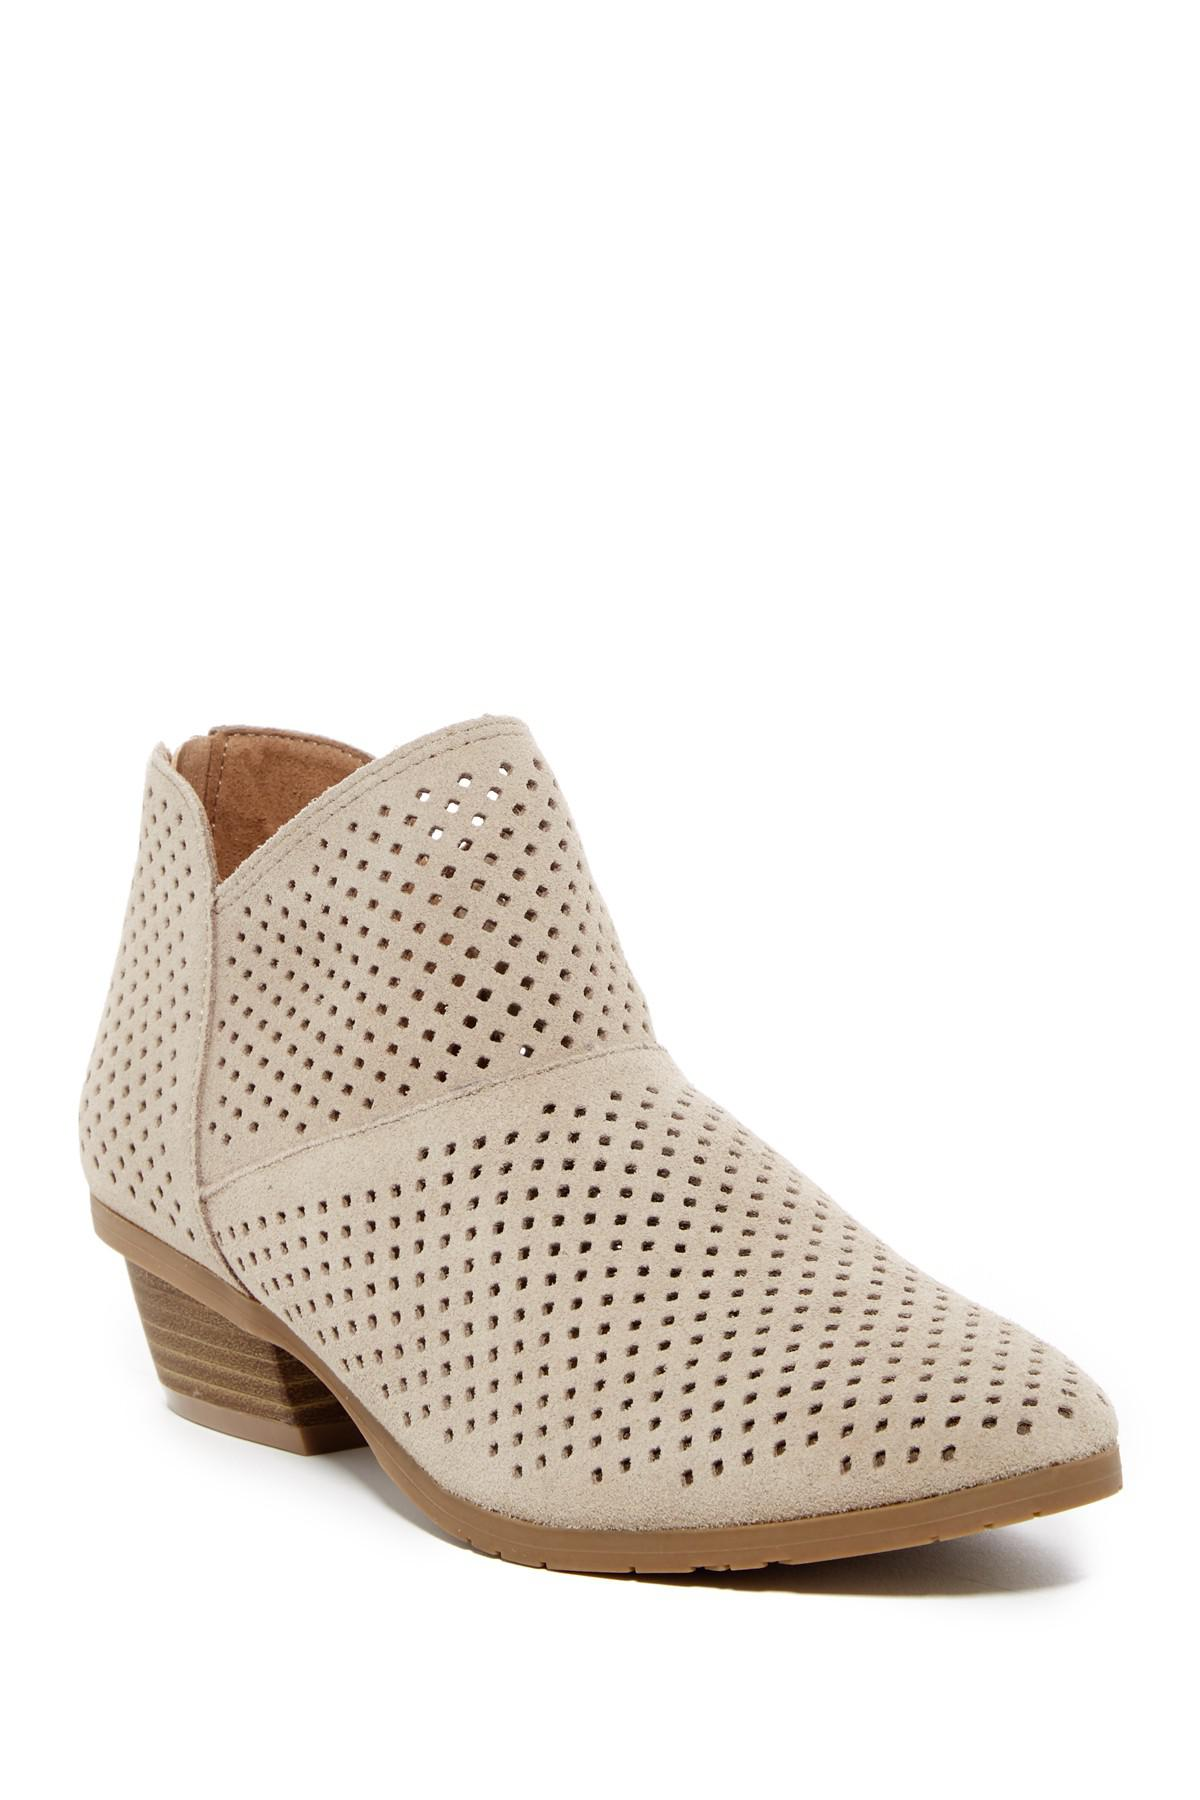 0407dd33d3614 Lyst - Kenneth Cole Reaction Side Walk Suede Ankle Bootie